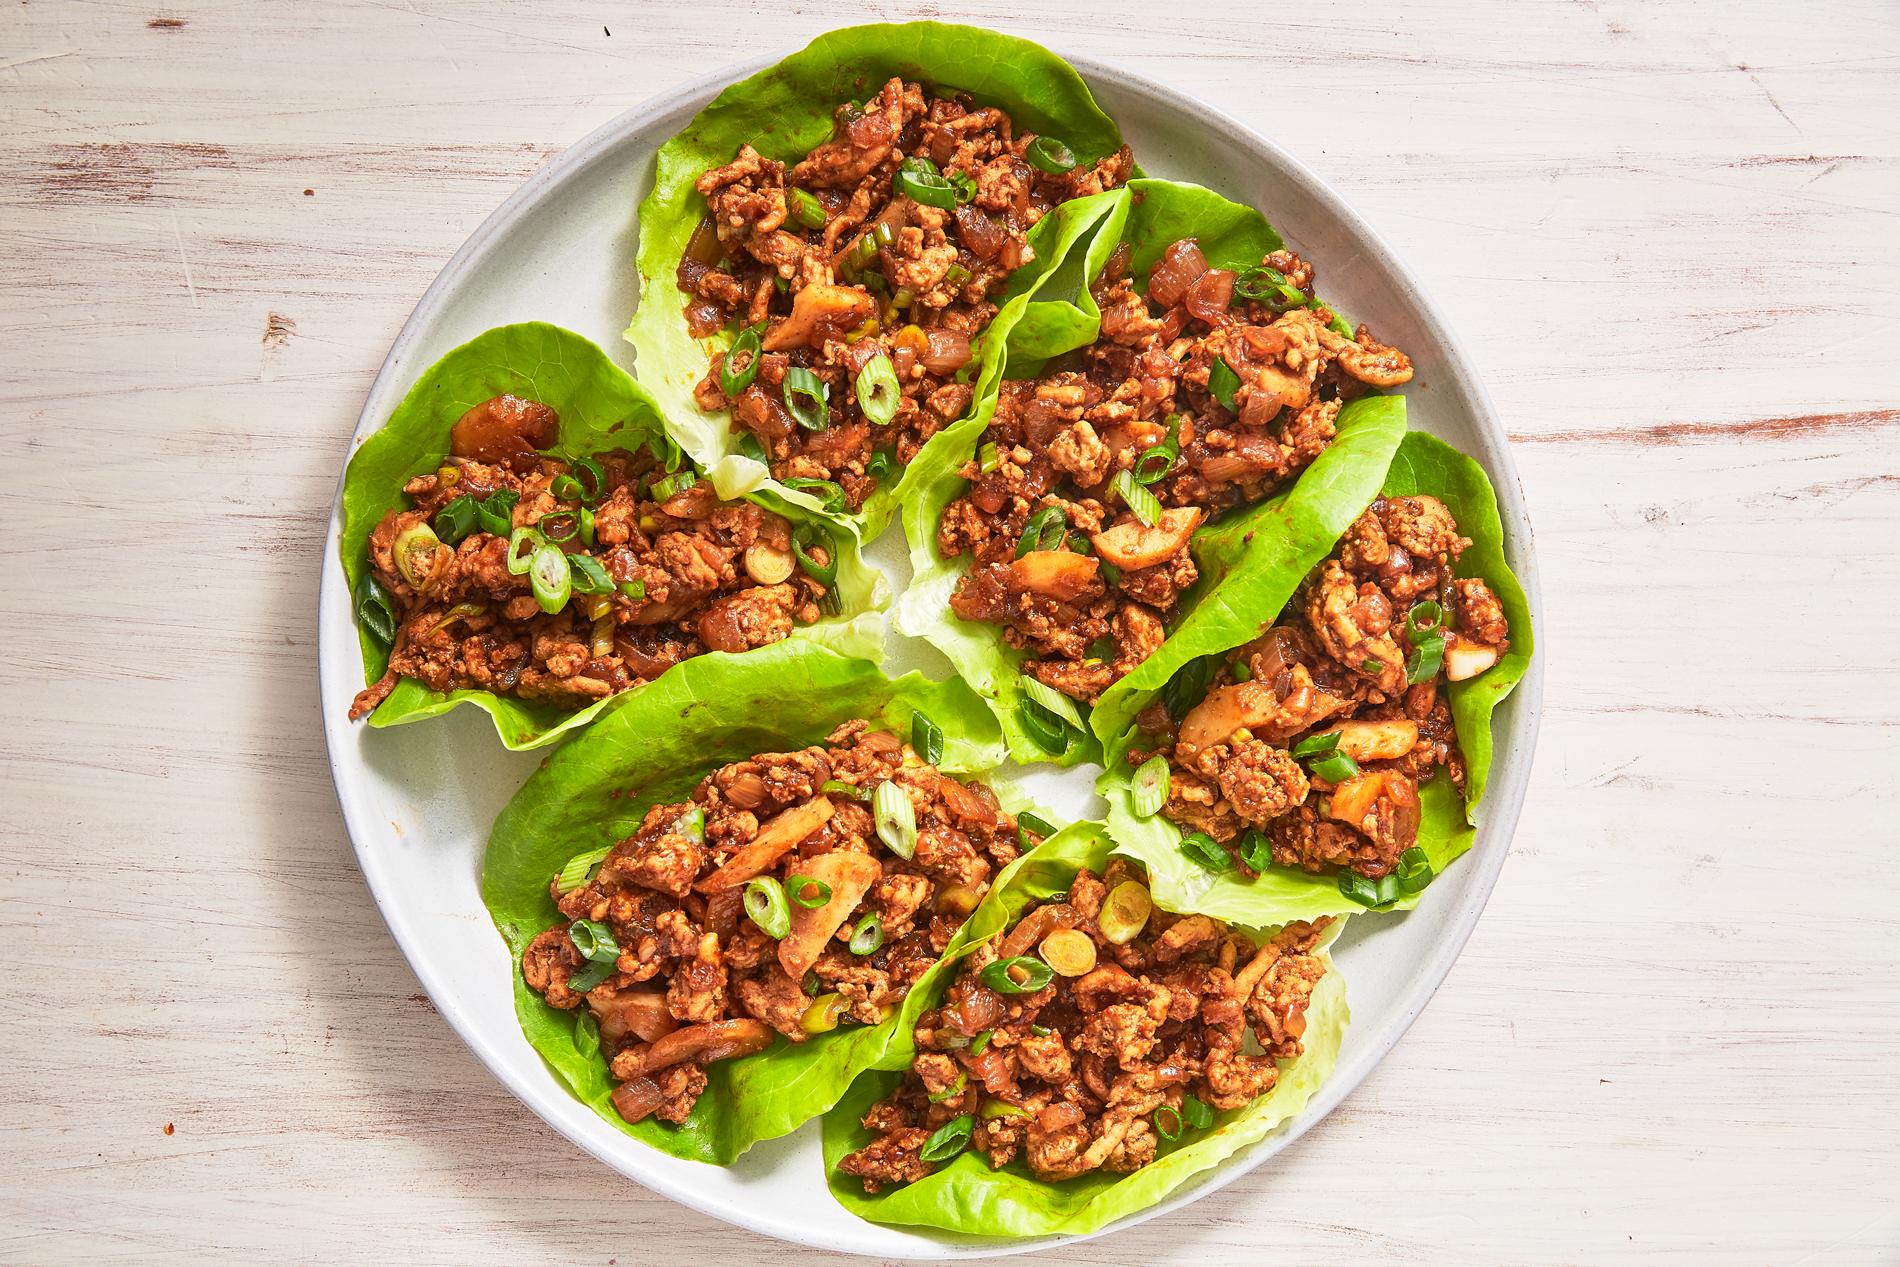 Best P F Chang Lettuce Wrap Recipe How To Make P F Chang Lettuce Wrap